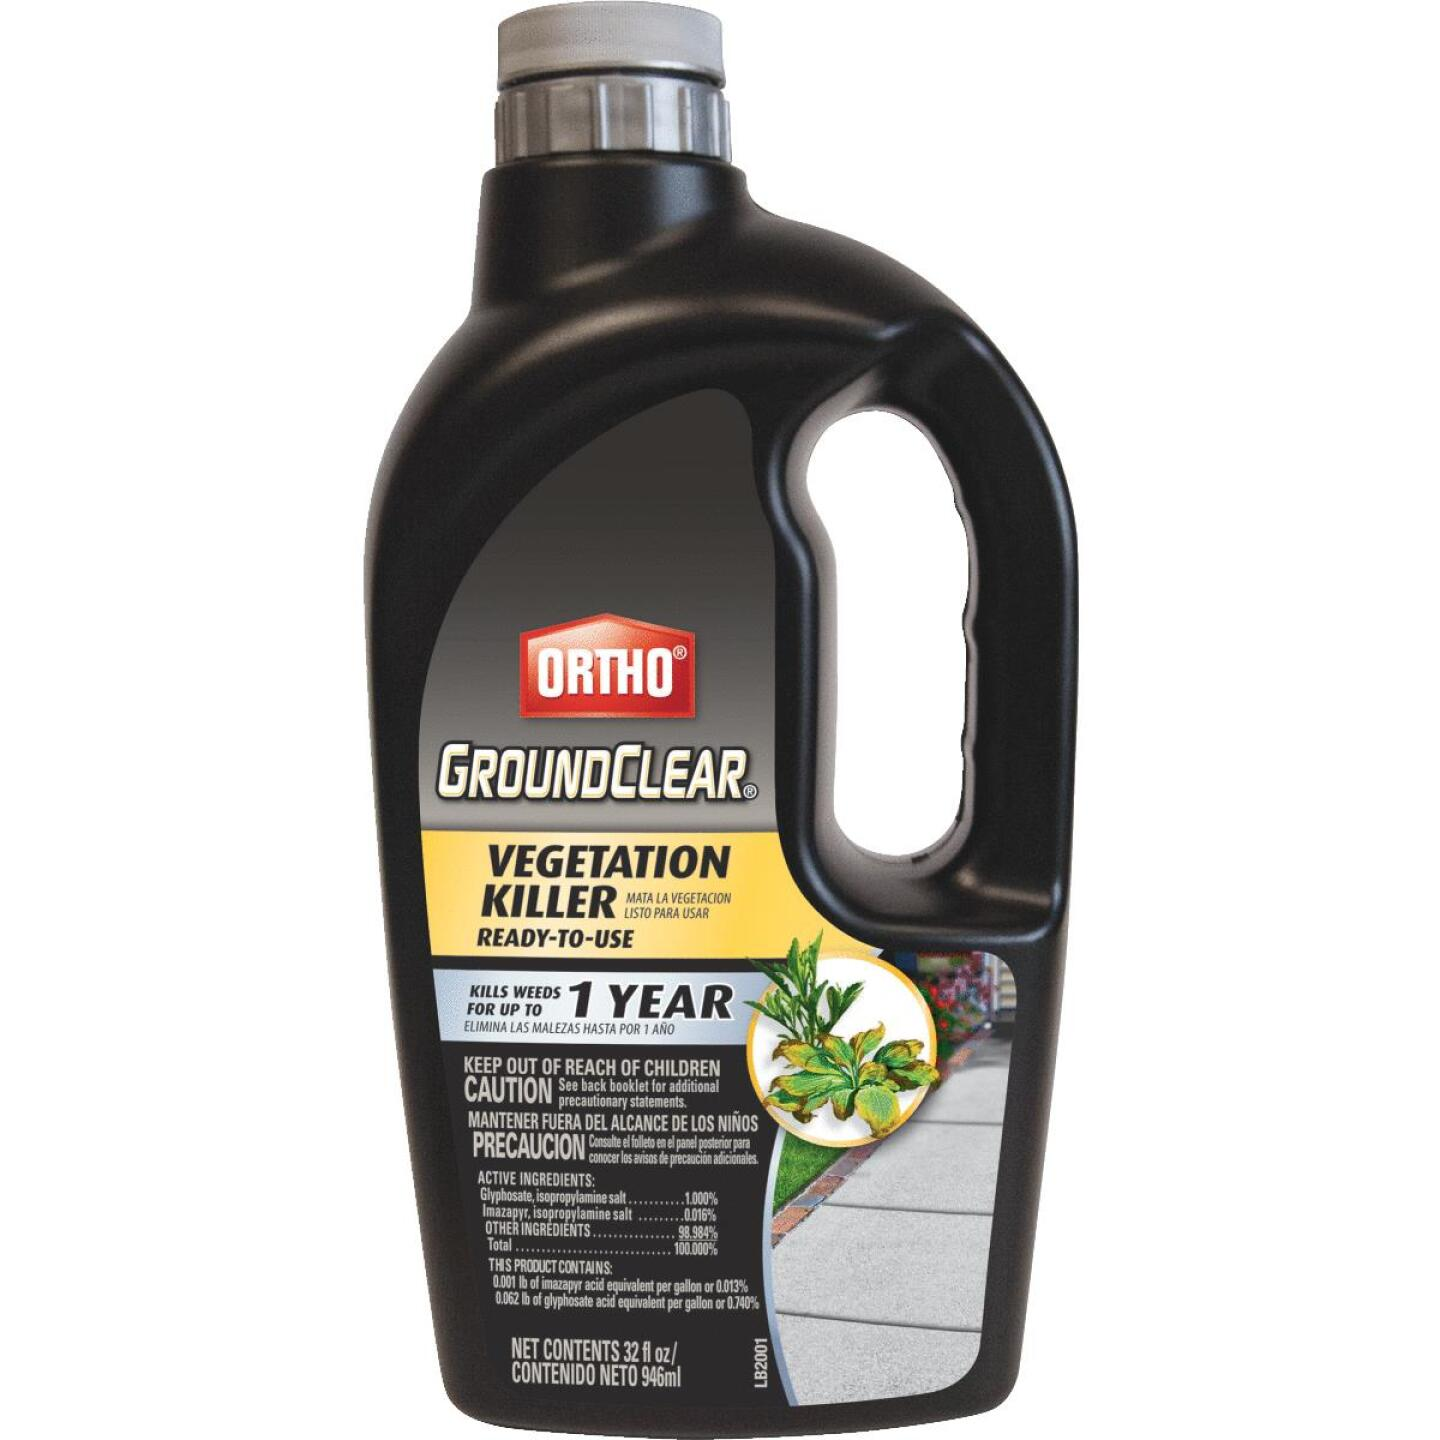 Ortho GroundClear 1 Qt. Ready To Use Vegetation Killer Image 1